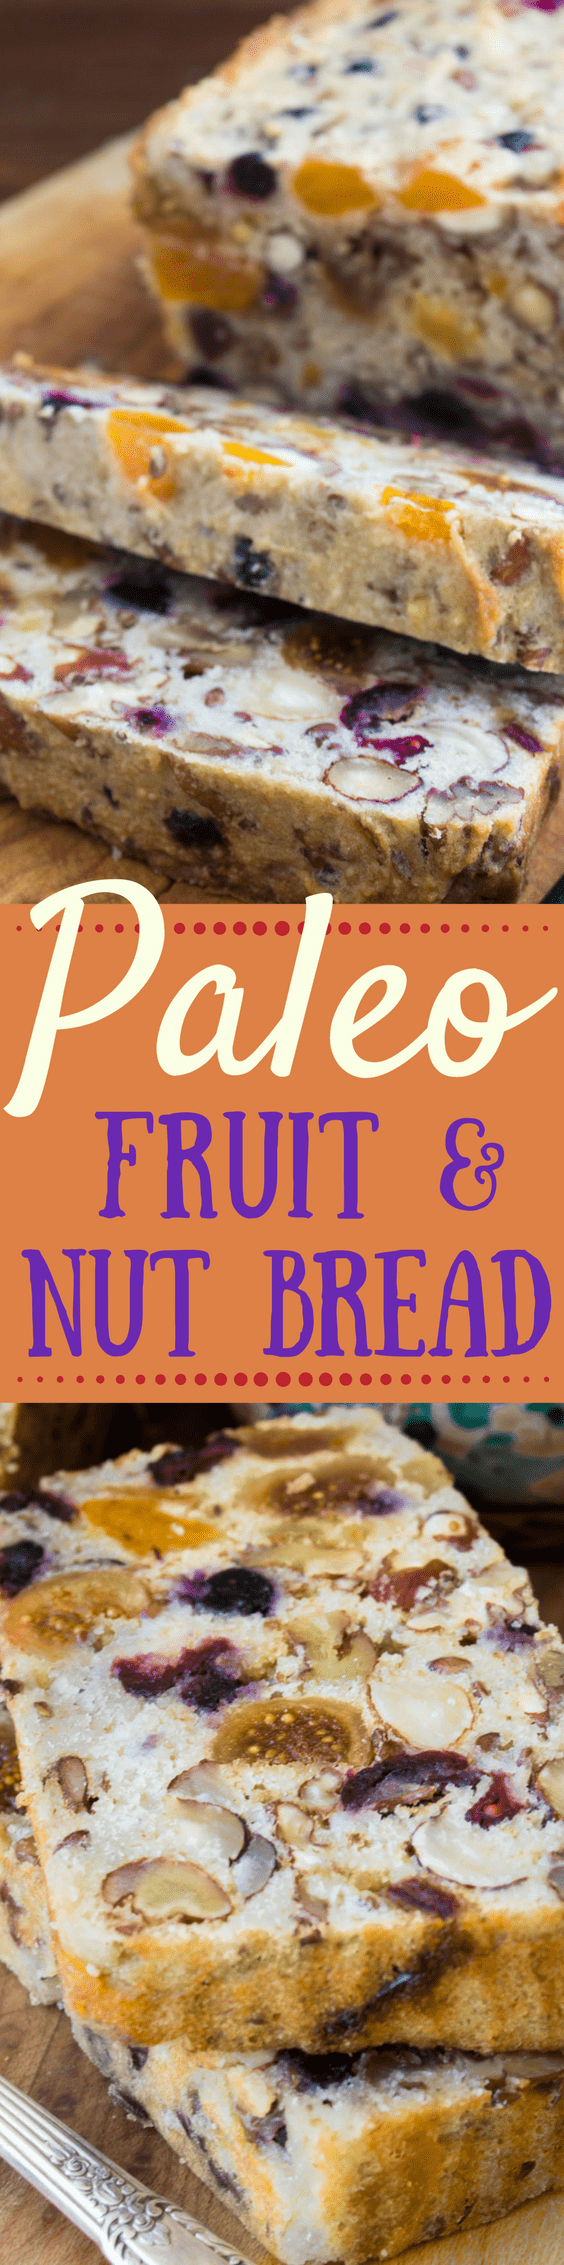 This quick and easy Paleo Fruit and Nut Bread is grain, sugar, and dairy free. It's also amazingly versatile, and fabulous toasted! #glutenfree #healthybread #quickbread #paleobread #whole30 #recipe #breakfastbread #sugarfree #grainfree #allergyfree